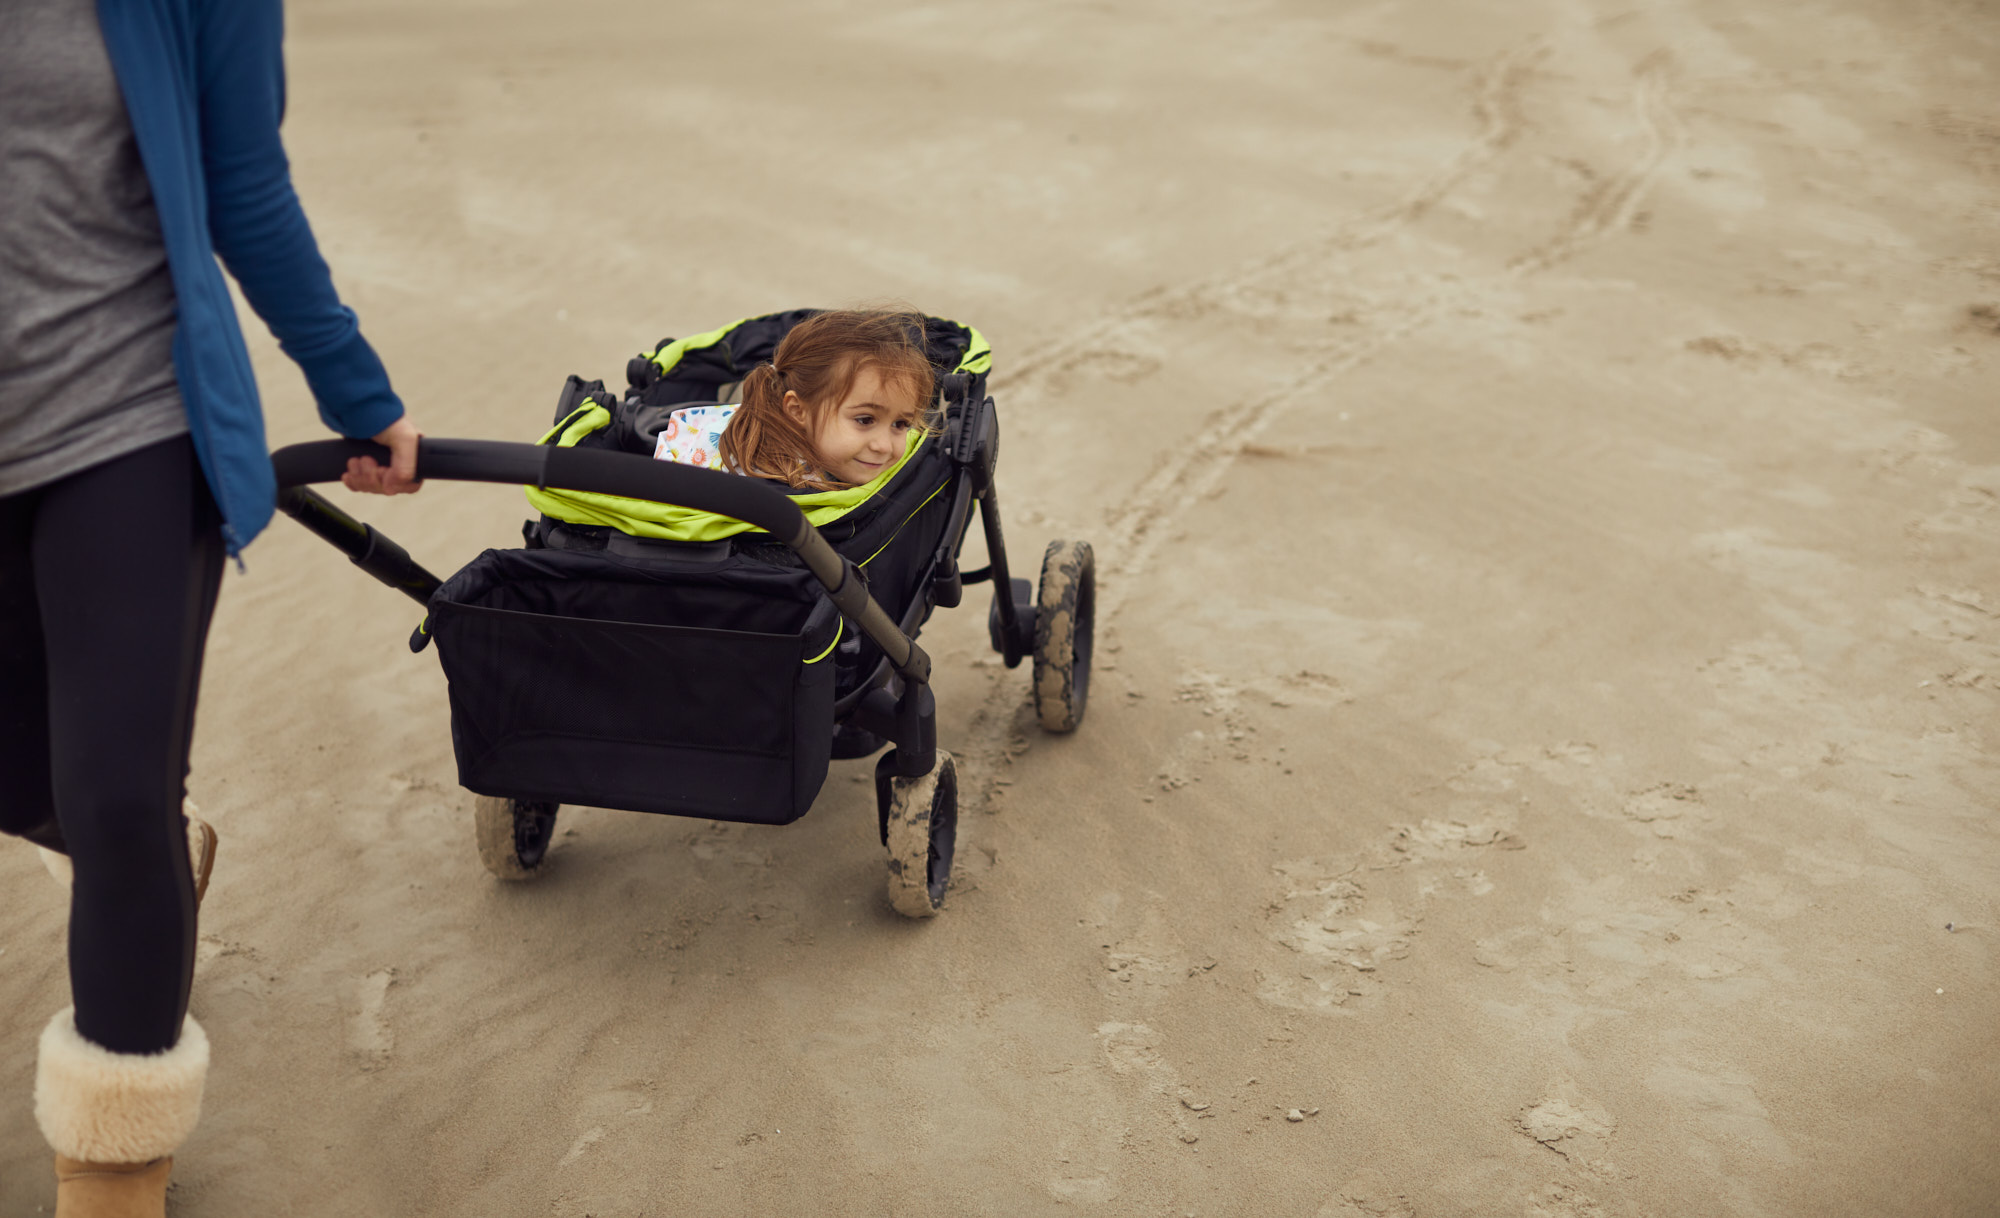 Child in Wagon on Beach | Brand Lifestyle Photography